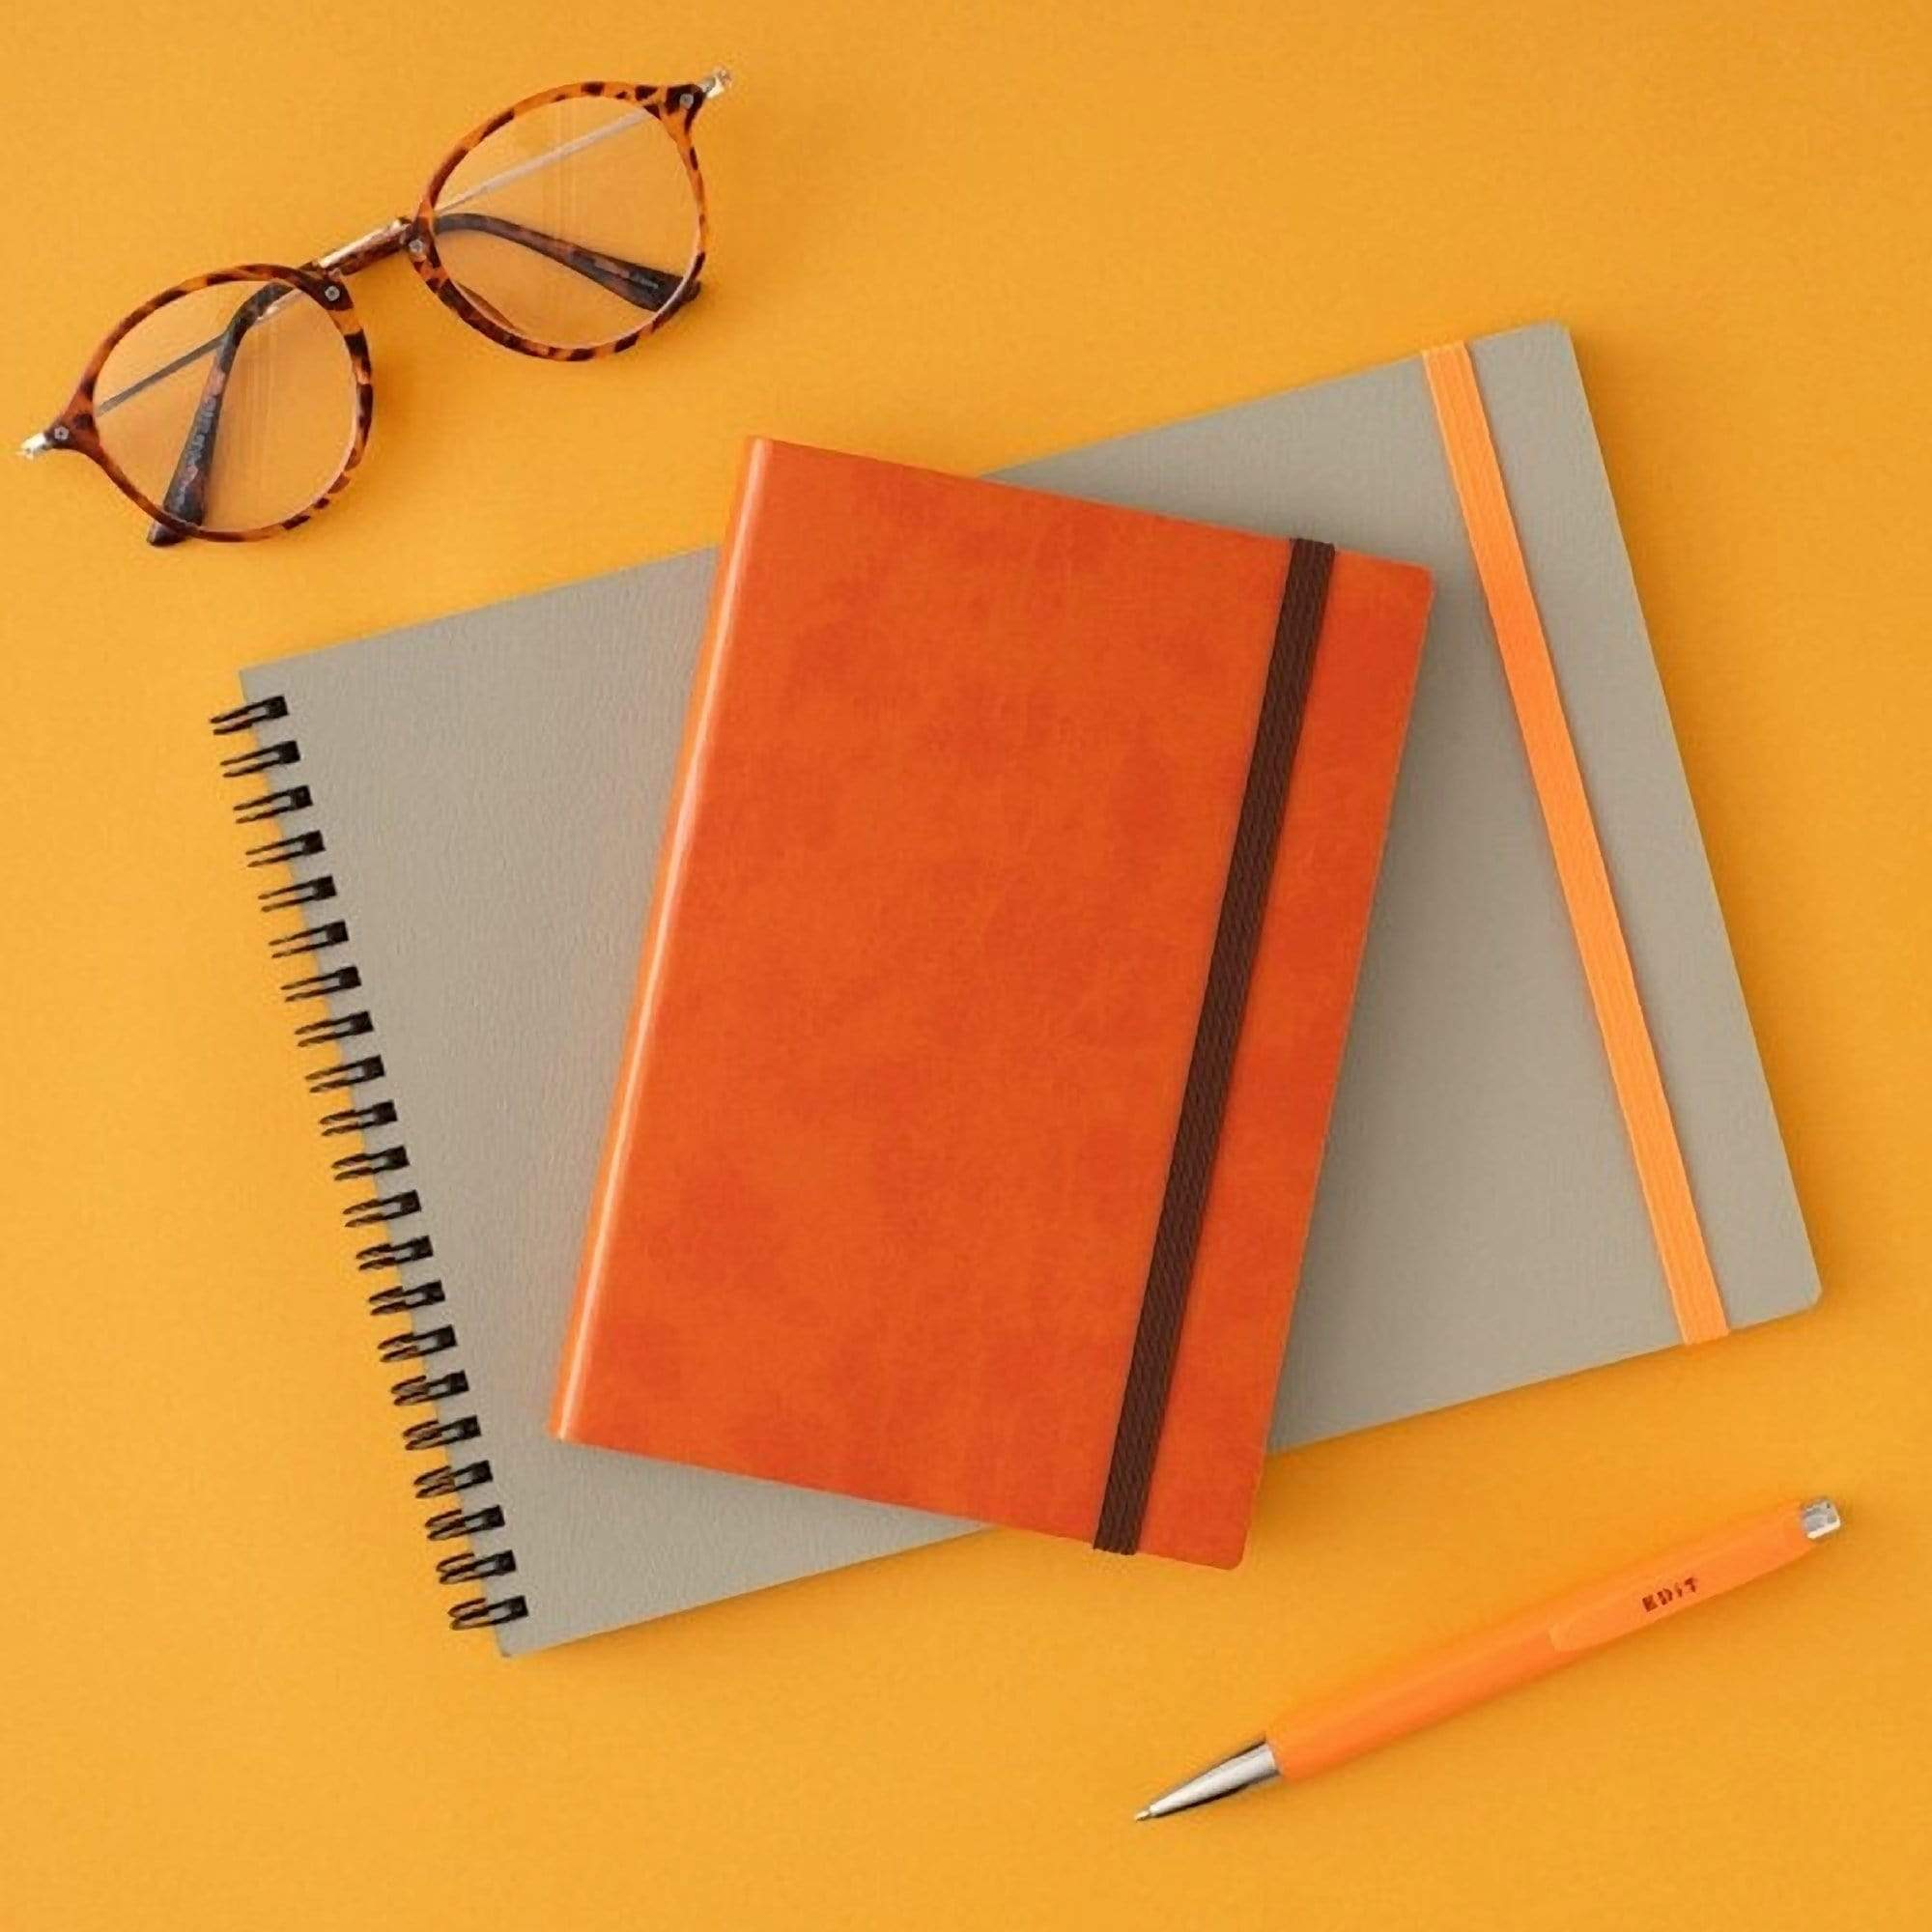 MARK'S EDiT A5 Hardcover Notebook 5mm Grid | Apricot Orange - The Stationery Life!